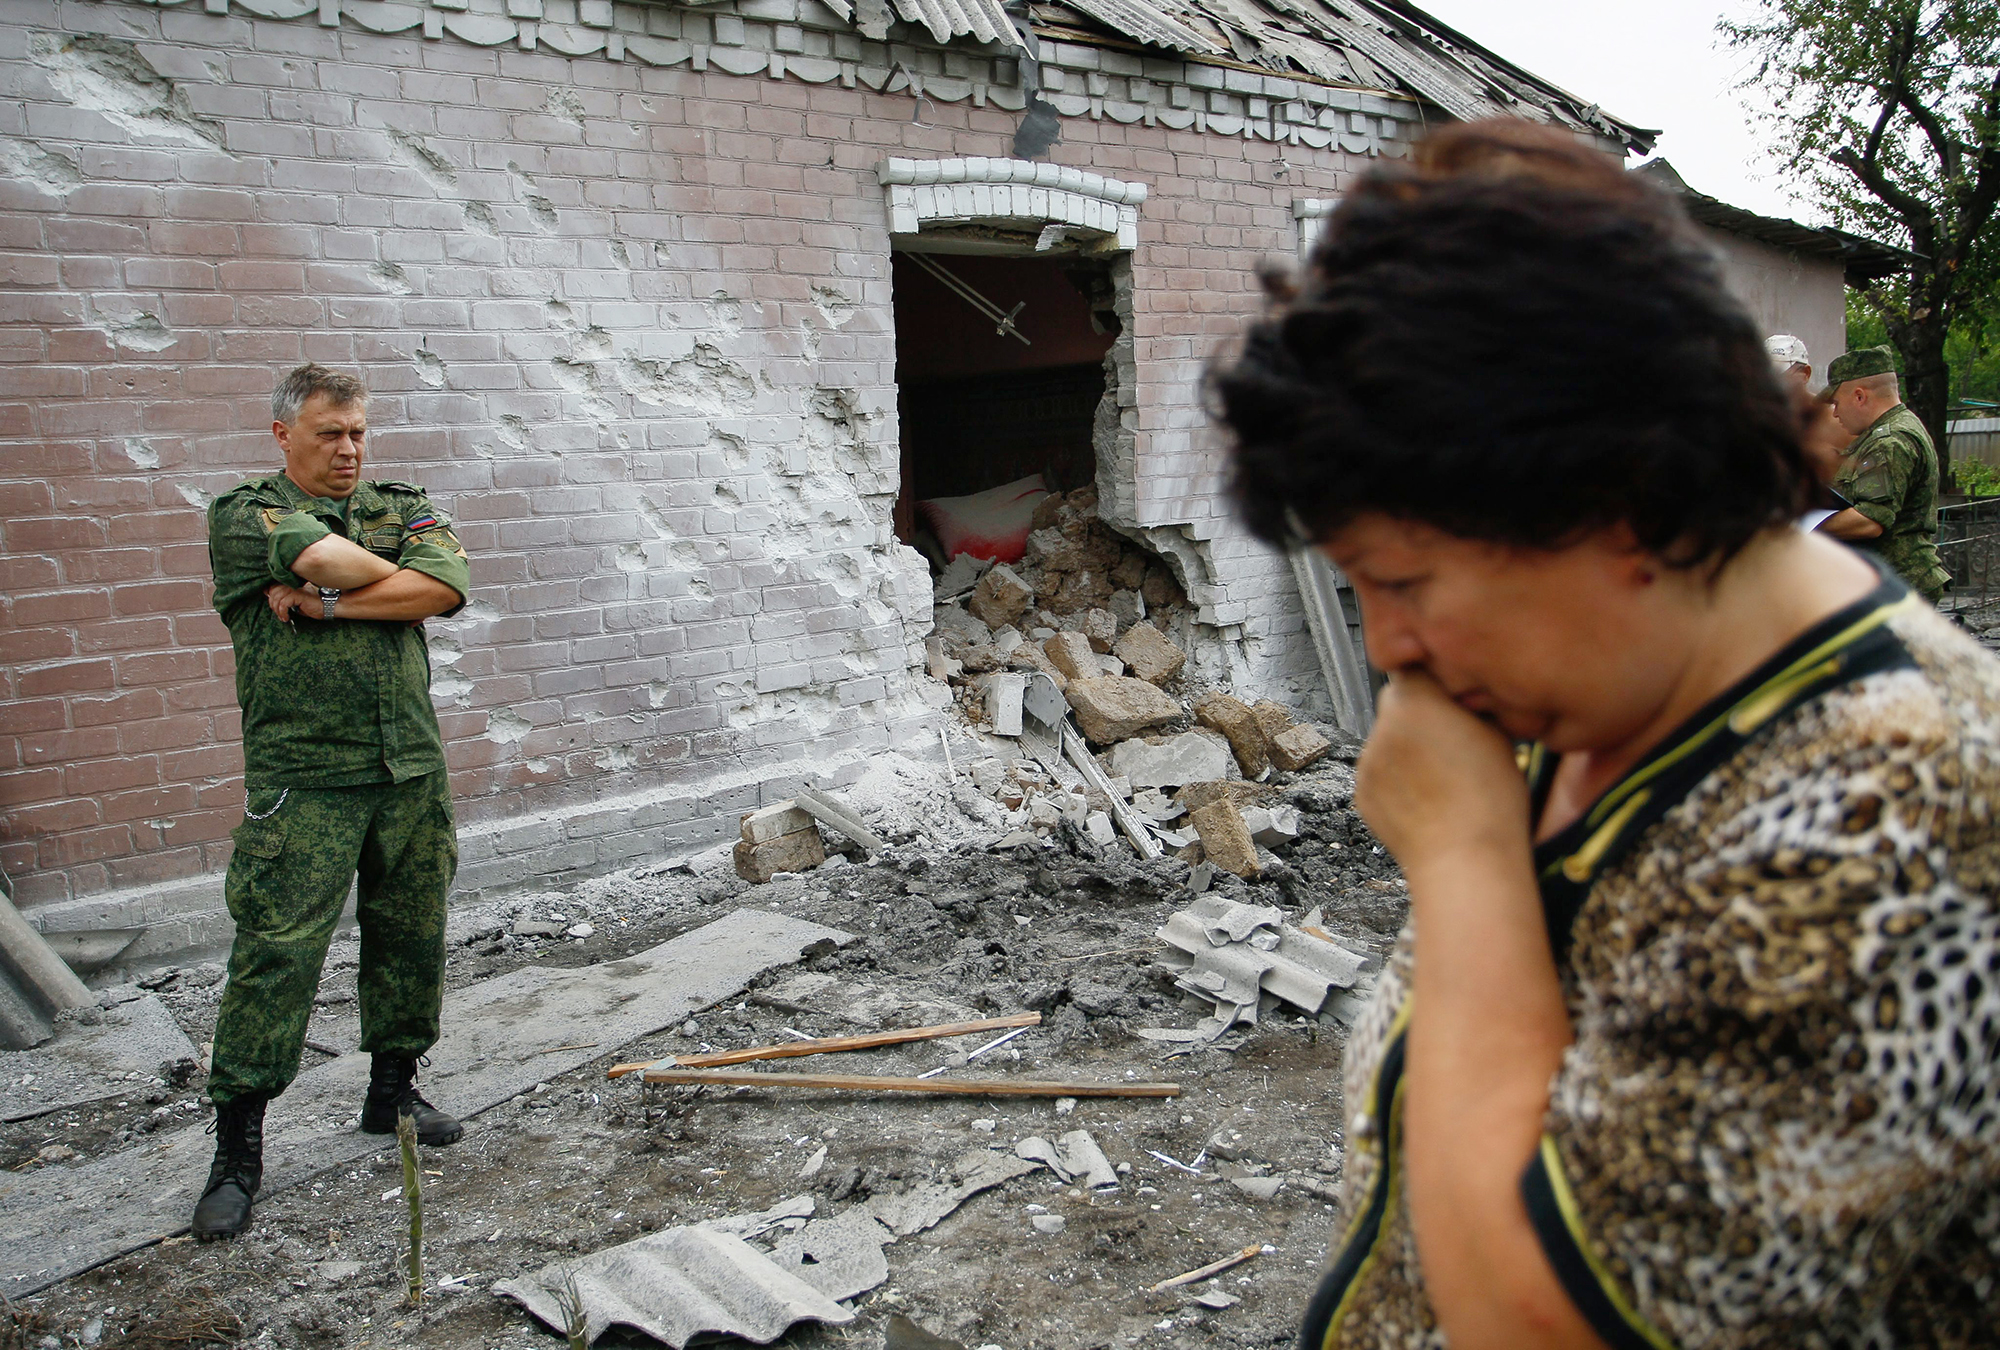 epa05450328 A woman reacts as a pro-Russian rebel stands next to a damaged house after the recent shelling, in Donetsk, Ukraine, 31 July 2016. EPA/ALEXANDER ERMOCHENKO